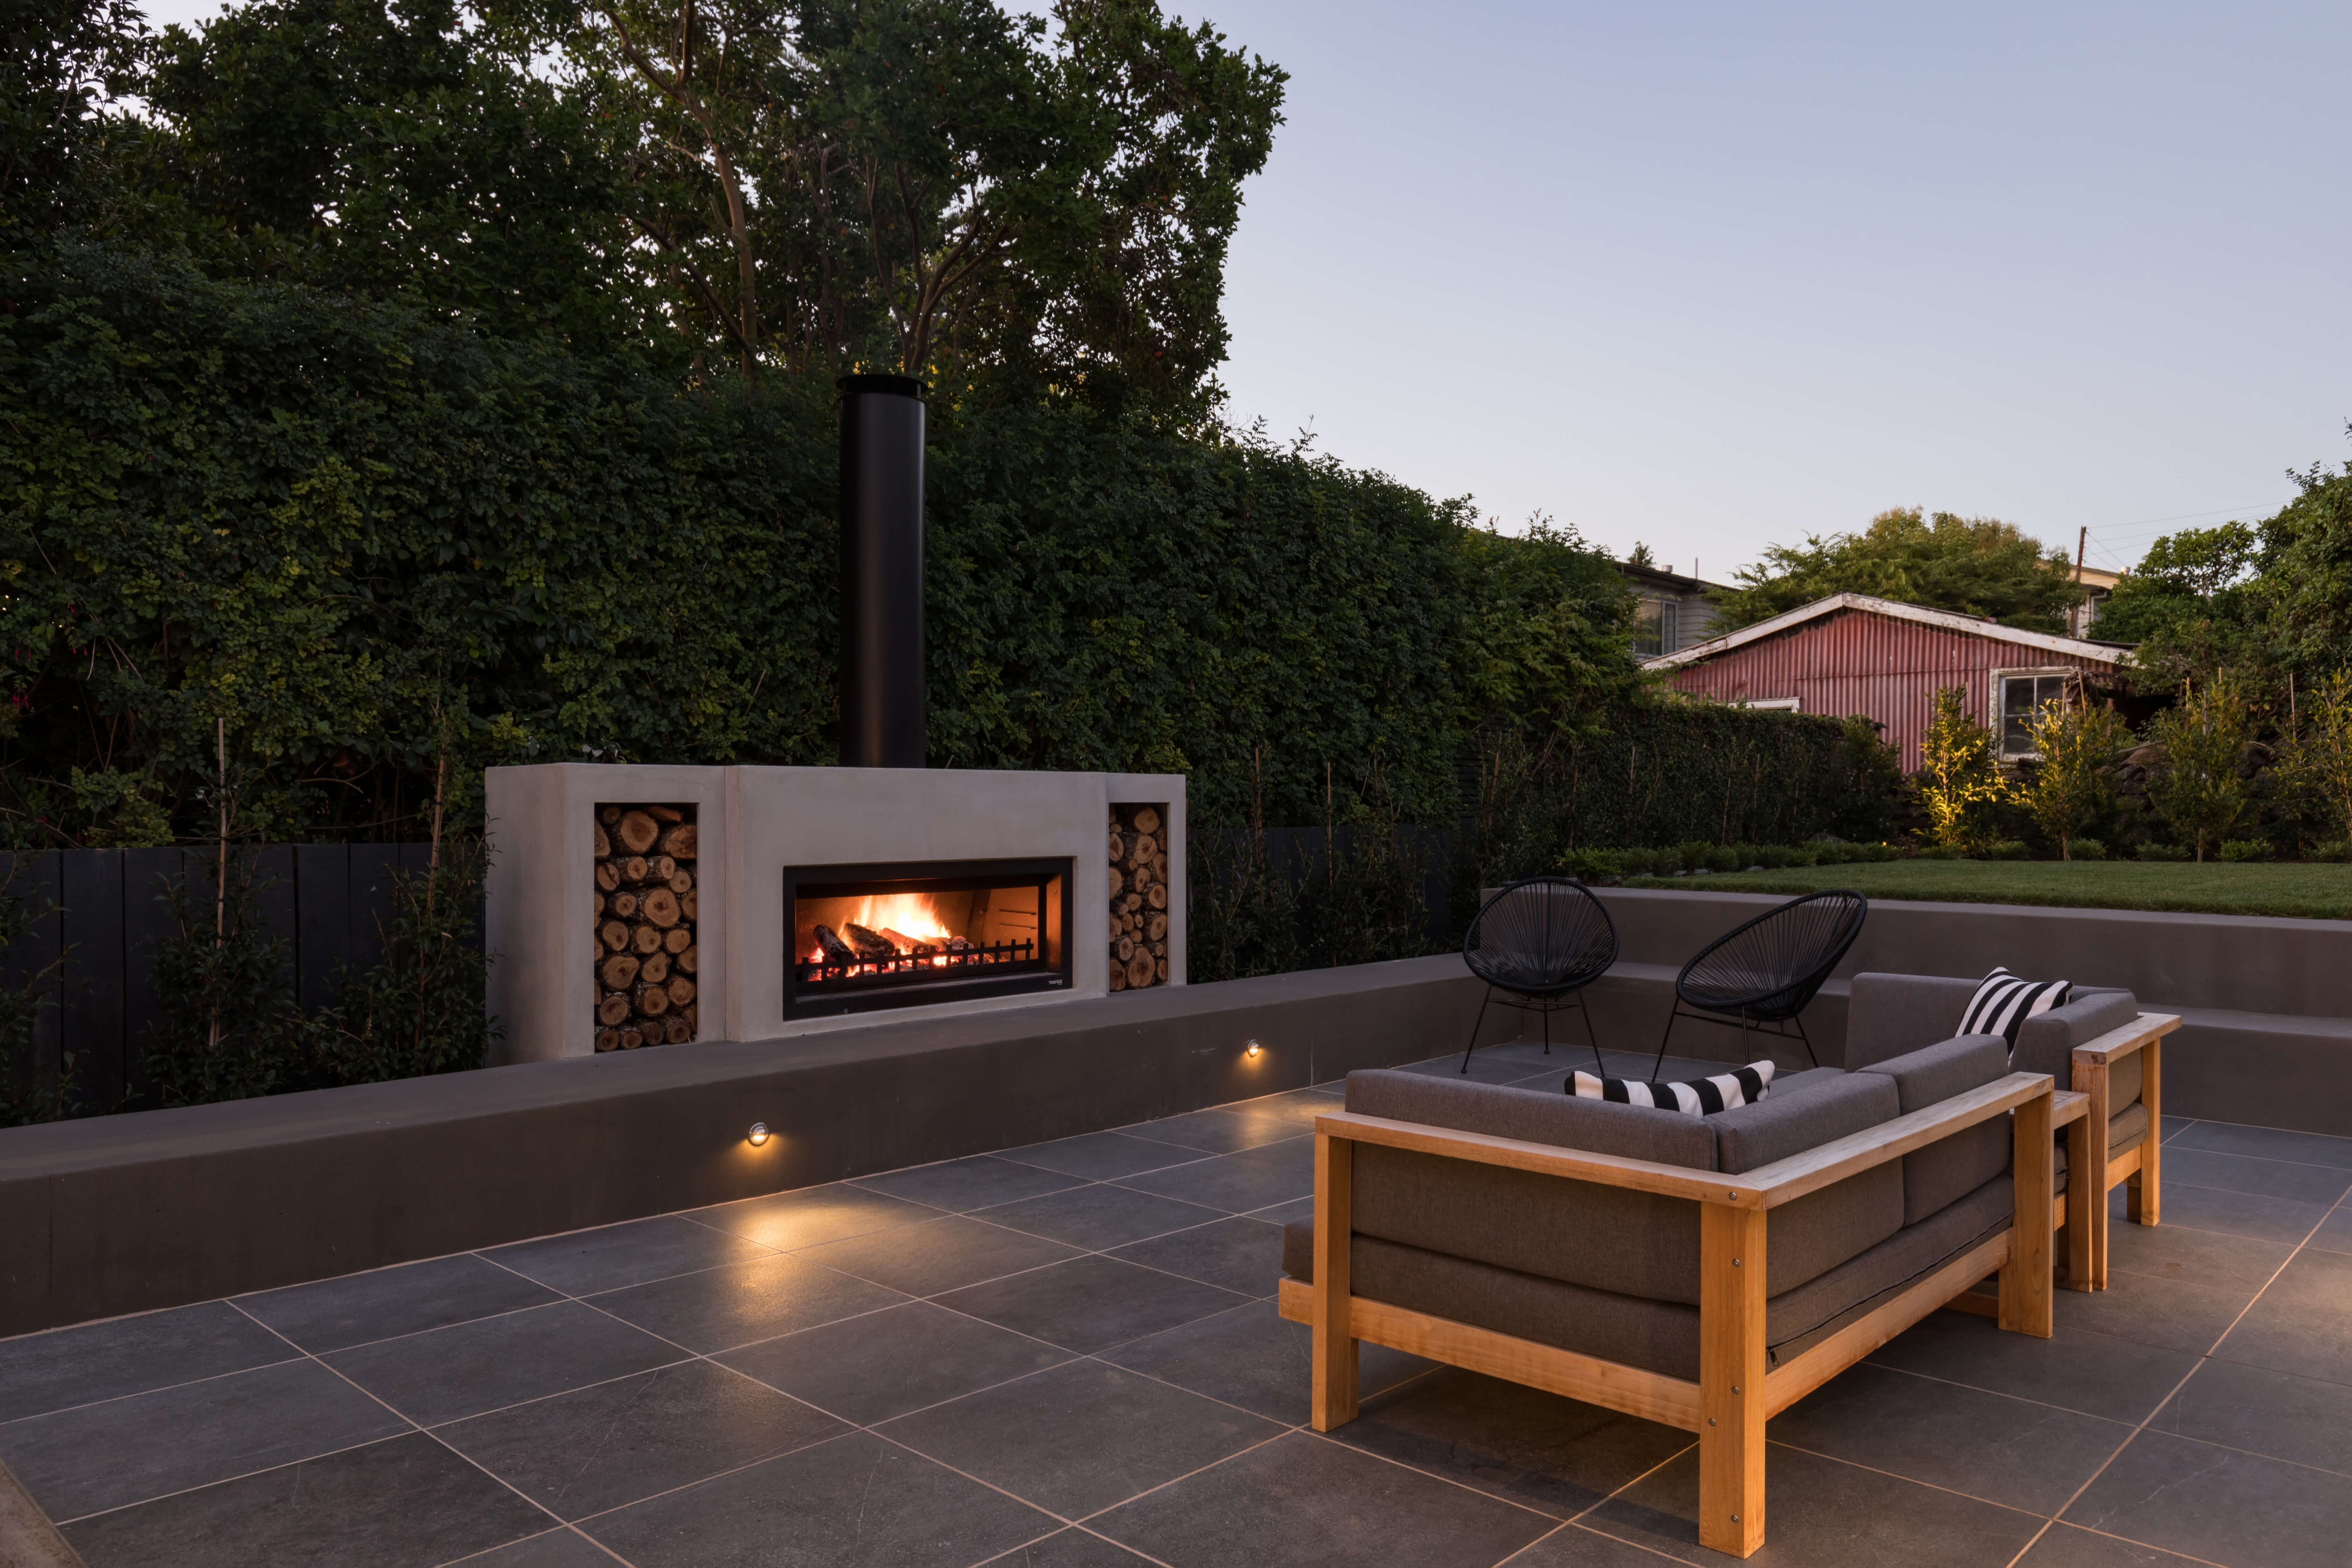 Buying an outdoor fireplace is better than building one